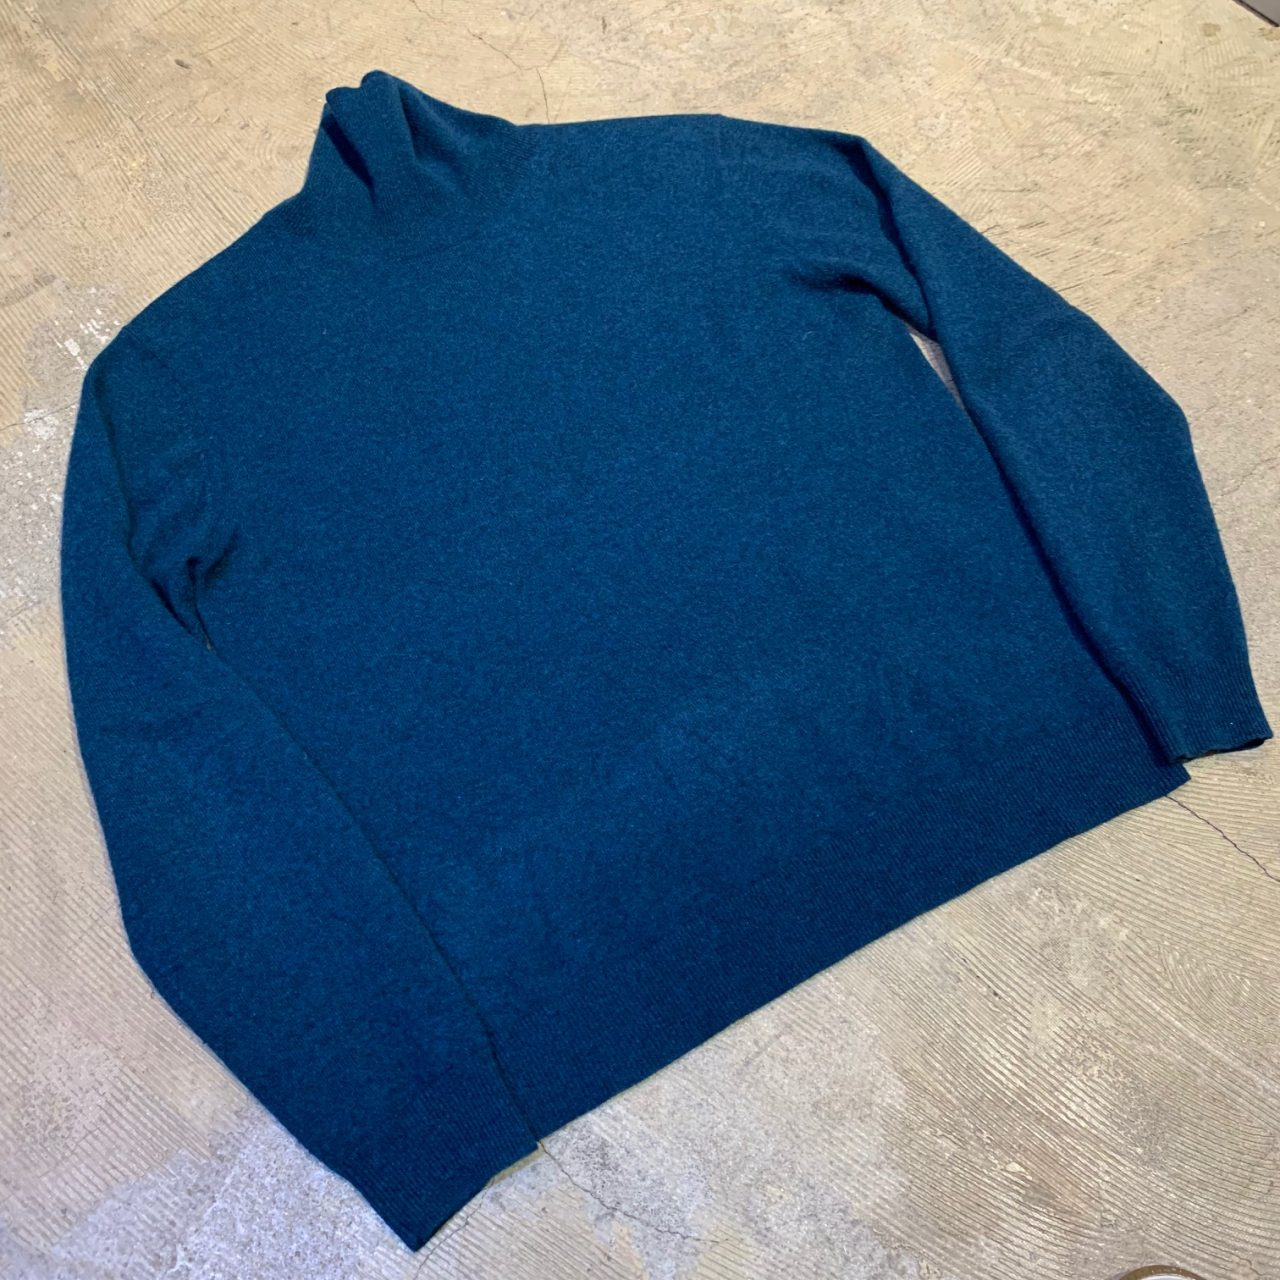 Paul Smith 18AW Cashmere Turtleneck Sweater